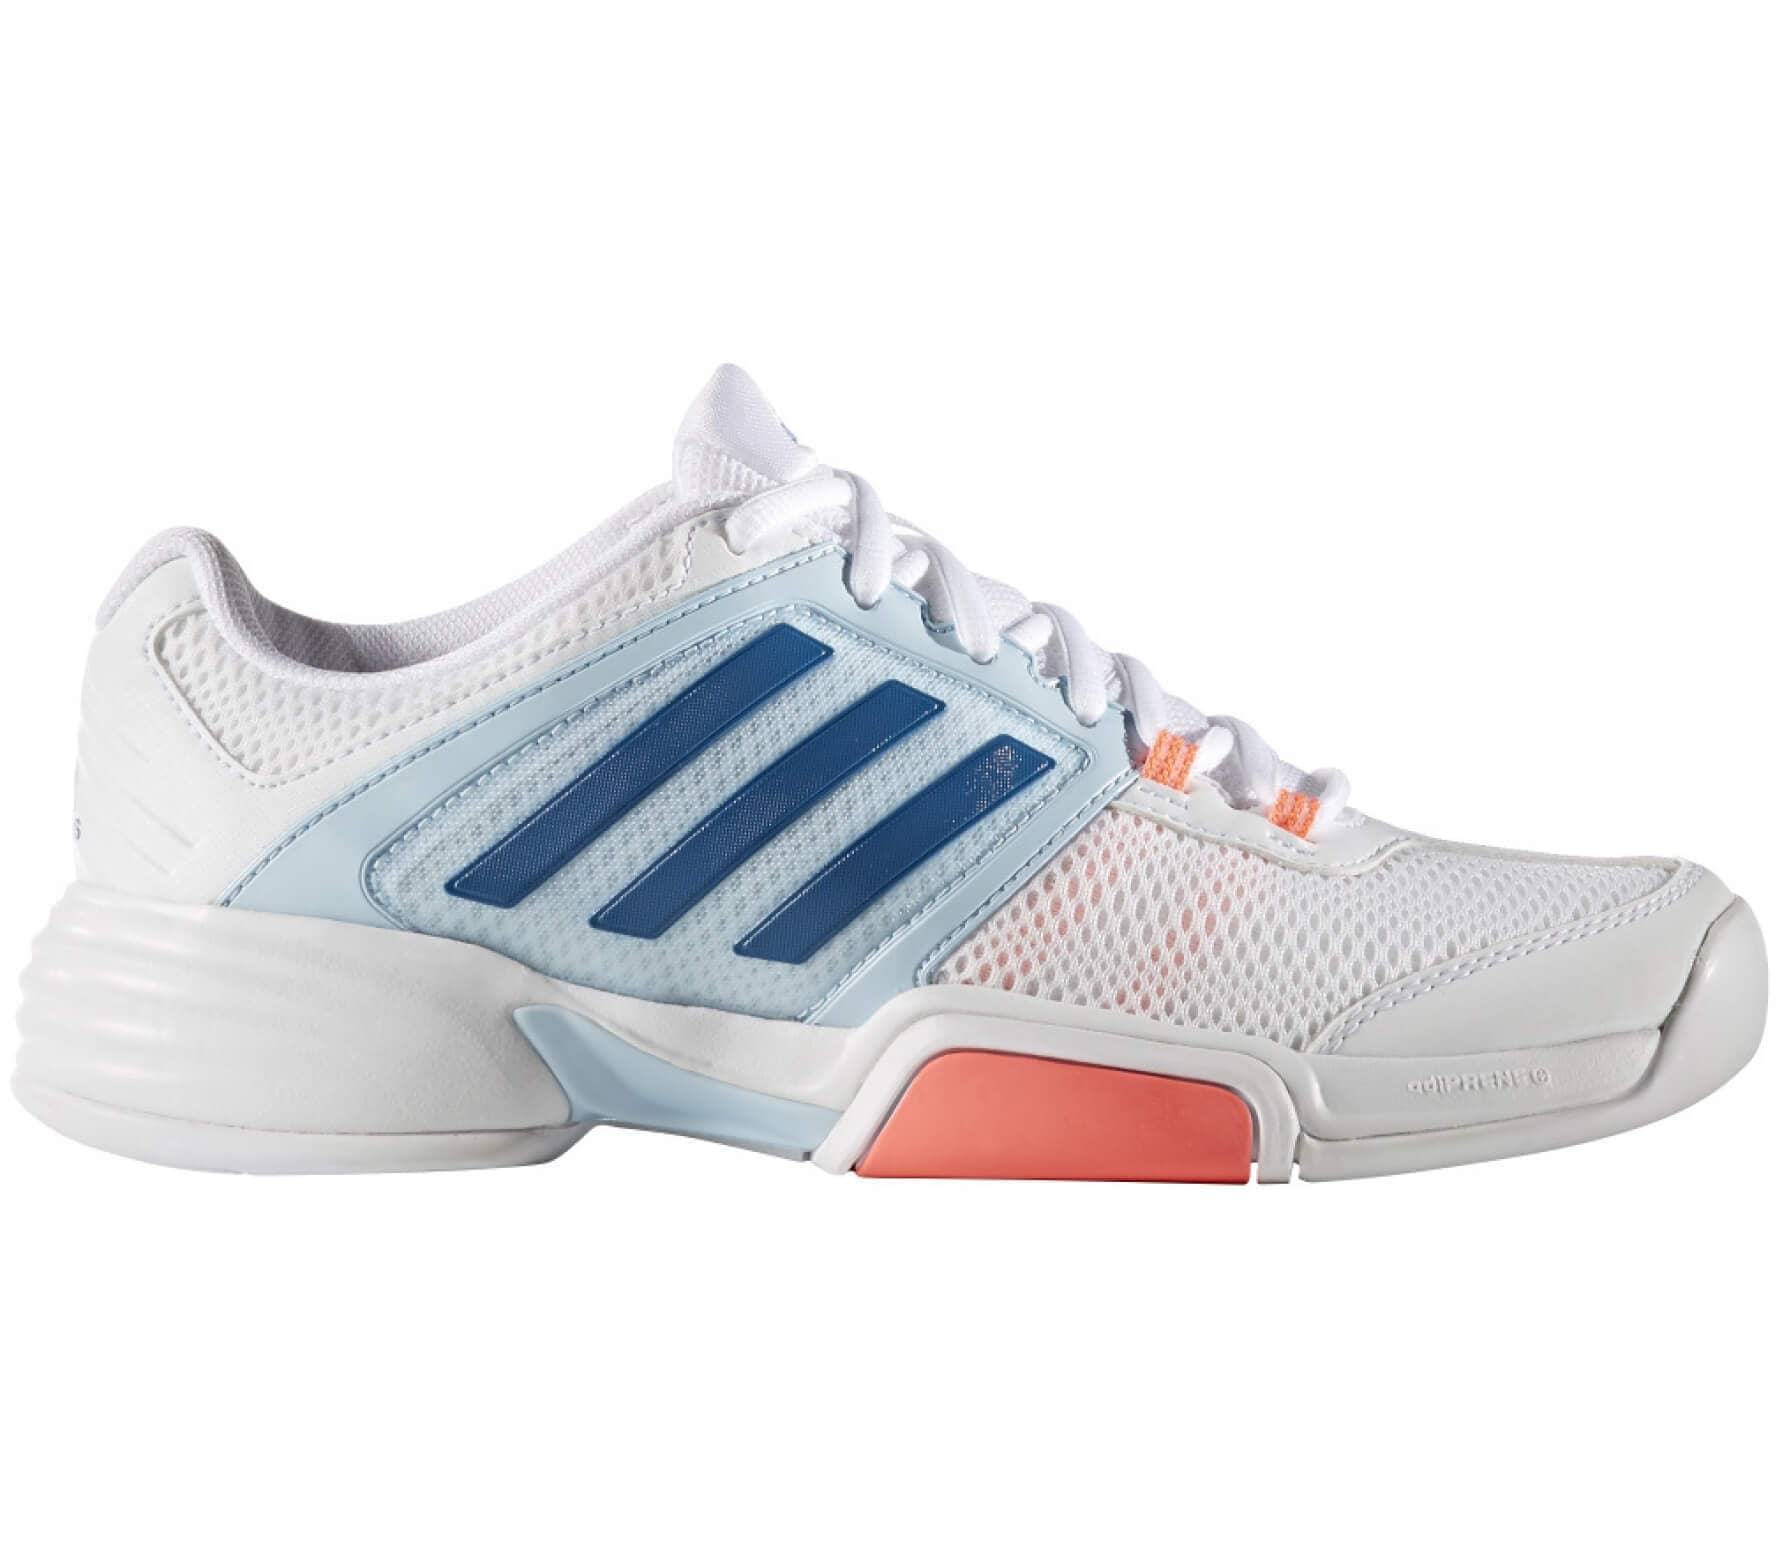 sports shoes 308b3 e6004 Adidas - Barricade Club CPT women s tennis shoes (white pink)